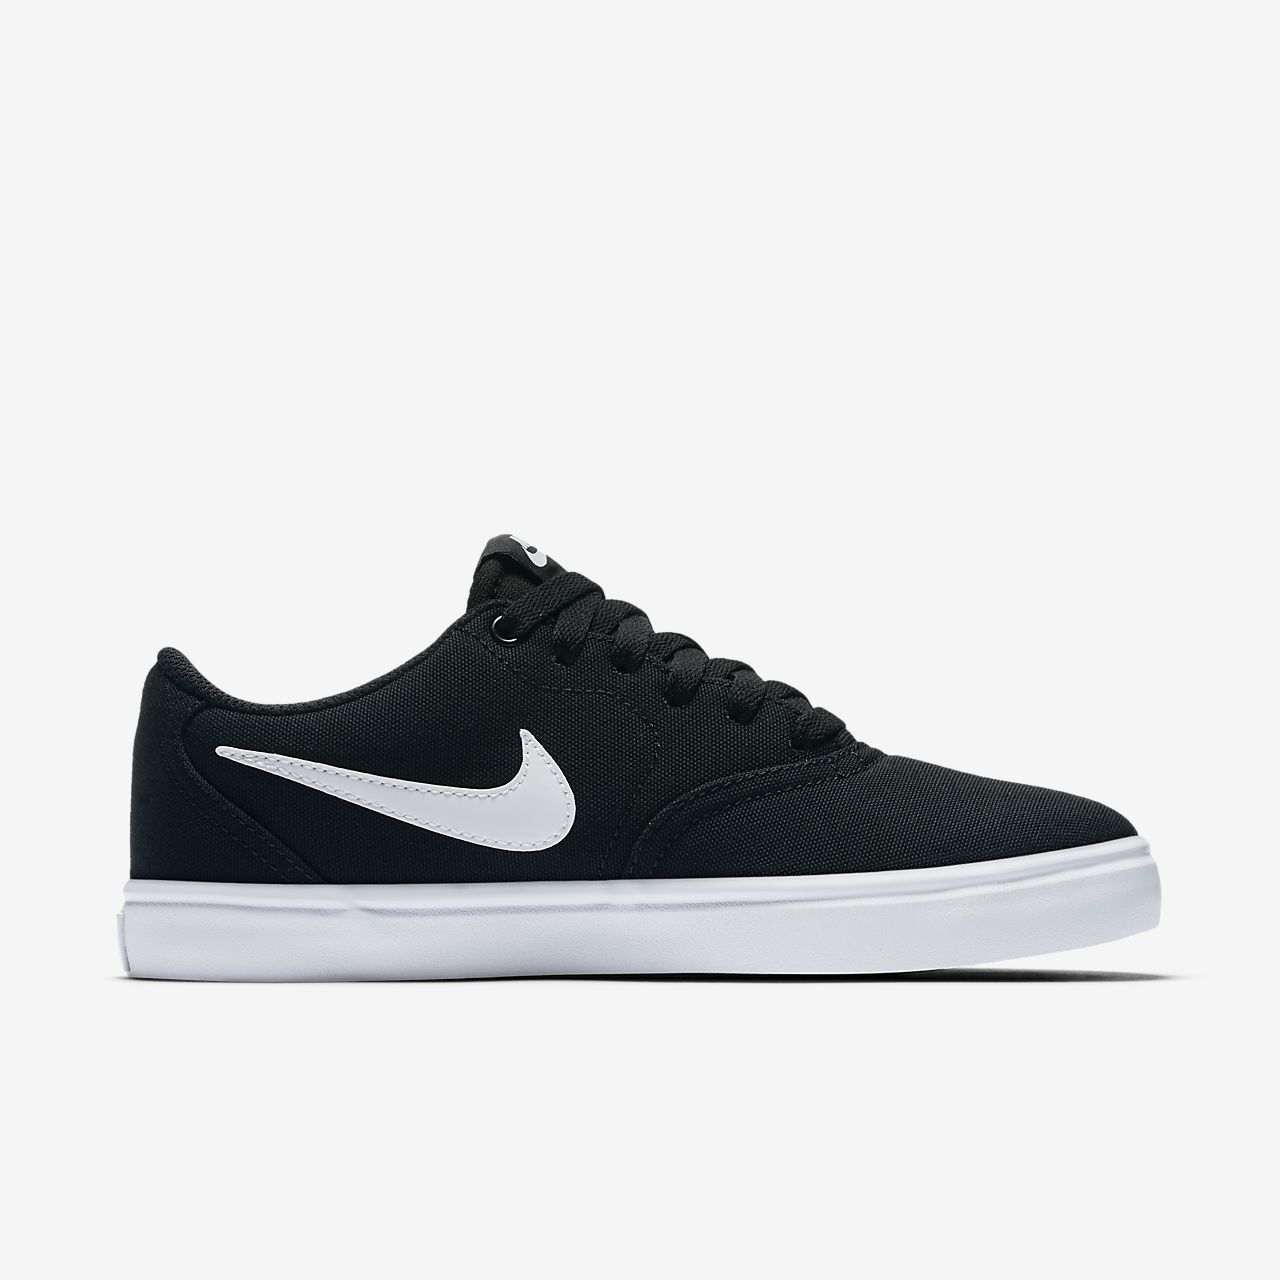 clearance perfect Women's Nike Solar Check Canvas Prem Skate Shoes clearance the cheapest clearance pay with paypal cheap sale wiki pMWRn